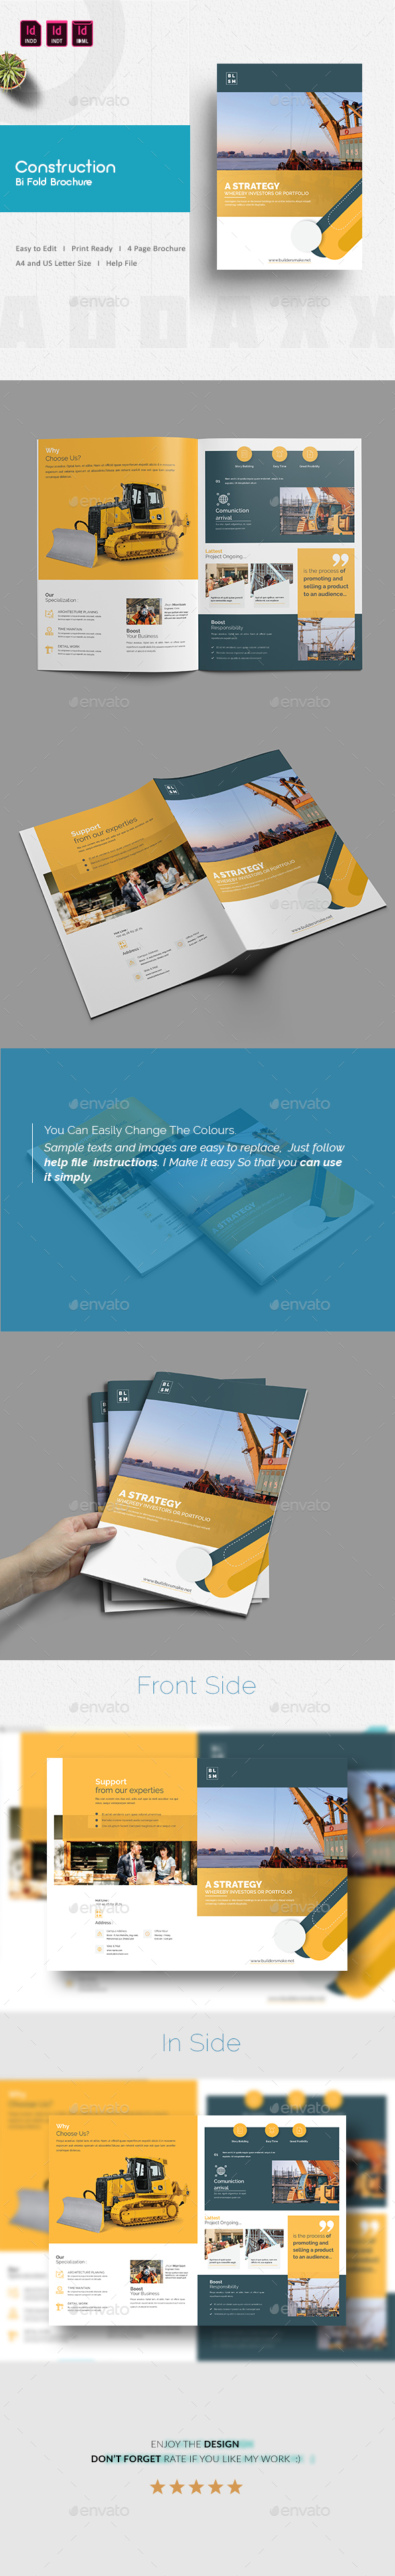 Construction Bi Fold Brochure - Corporate Brochures